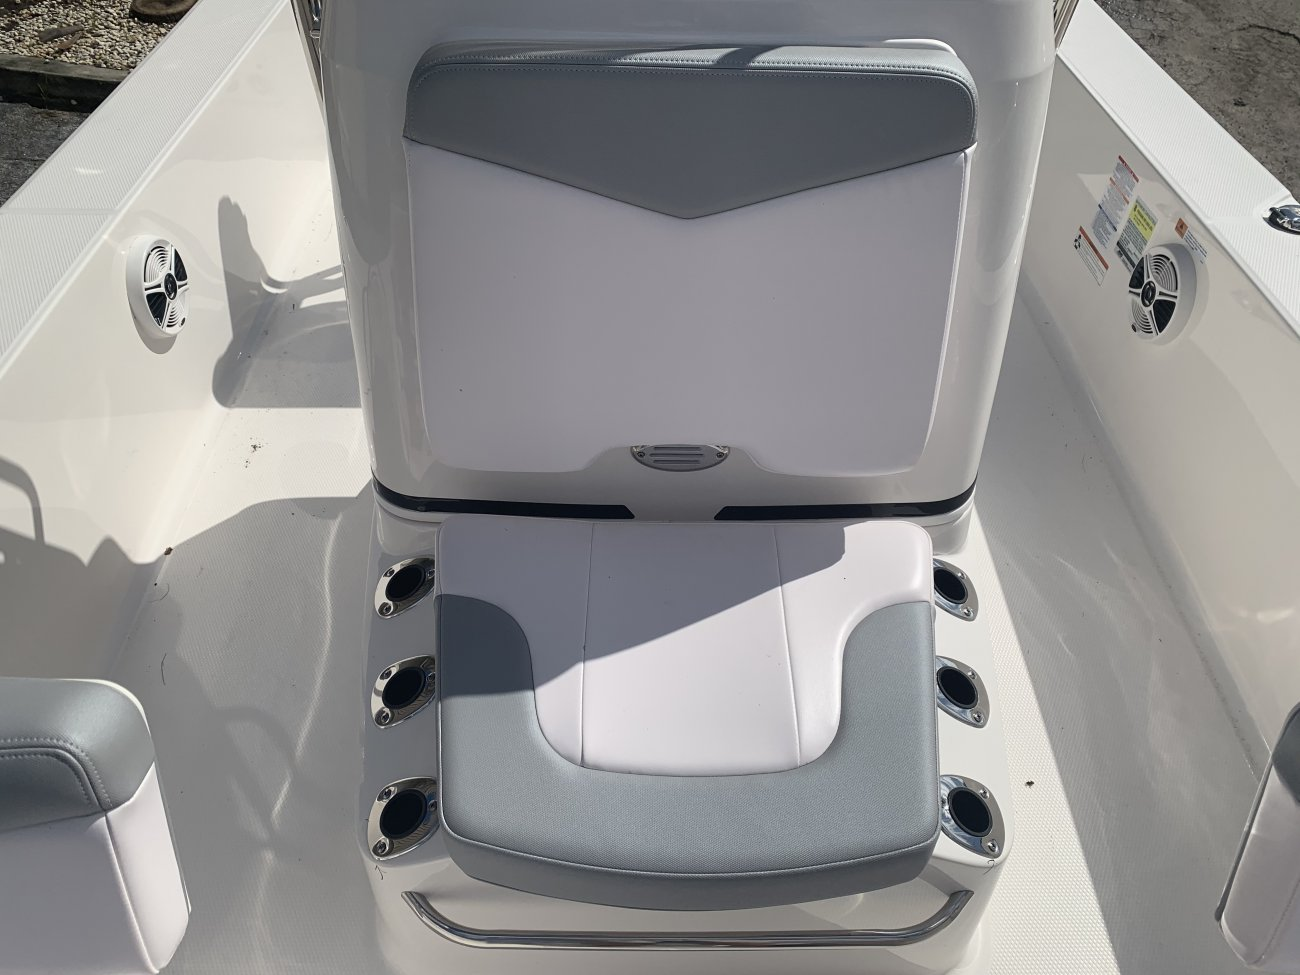 A 206 Cayman Bay Boat is a Power and could be classed as a Bass Boat, Bay Boat, Bowrider, Center Console, Fish and Ski, Flats Boat, Freshwater Fishing, High Performance, Saltwater Fishing, Runabout,  or, just an overall Great Boat!